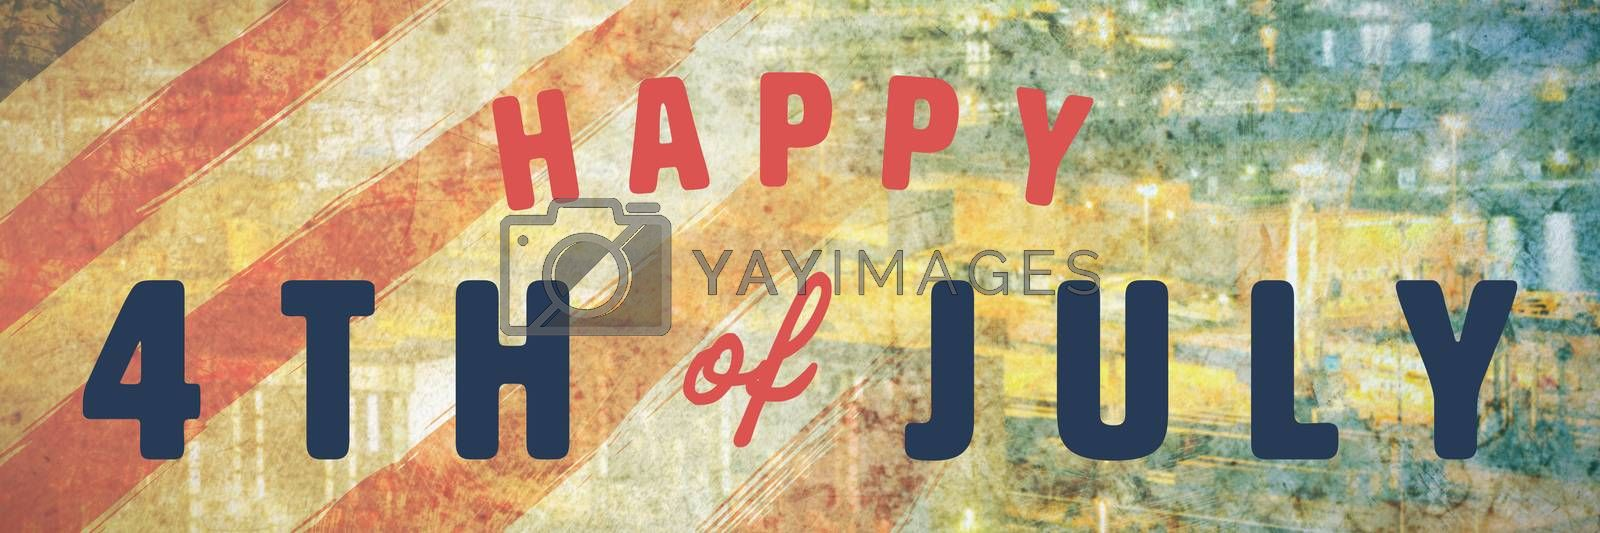 Digitally generated image of happy 4th of july text against new york